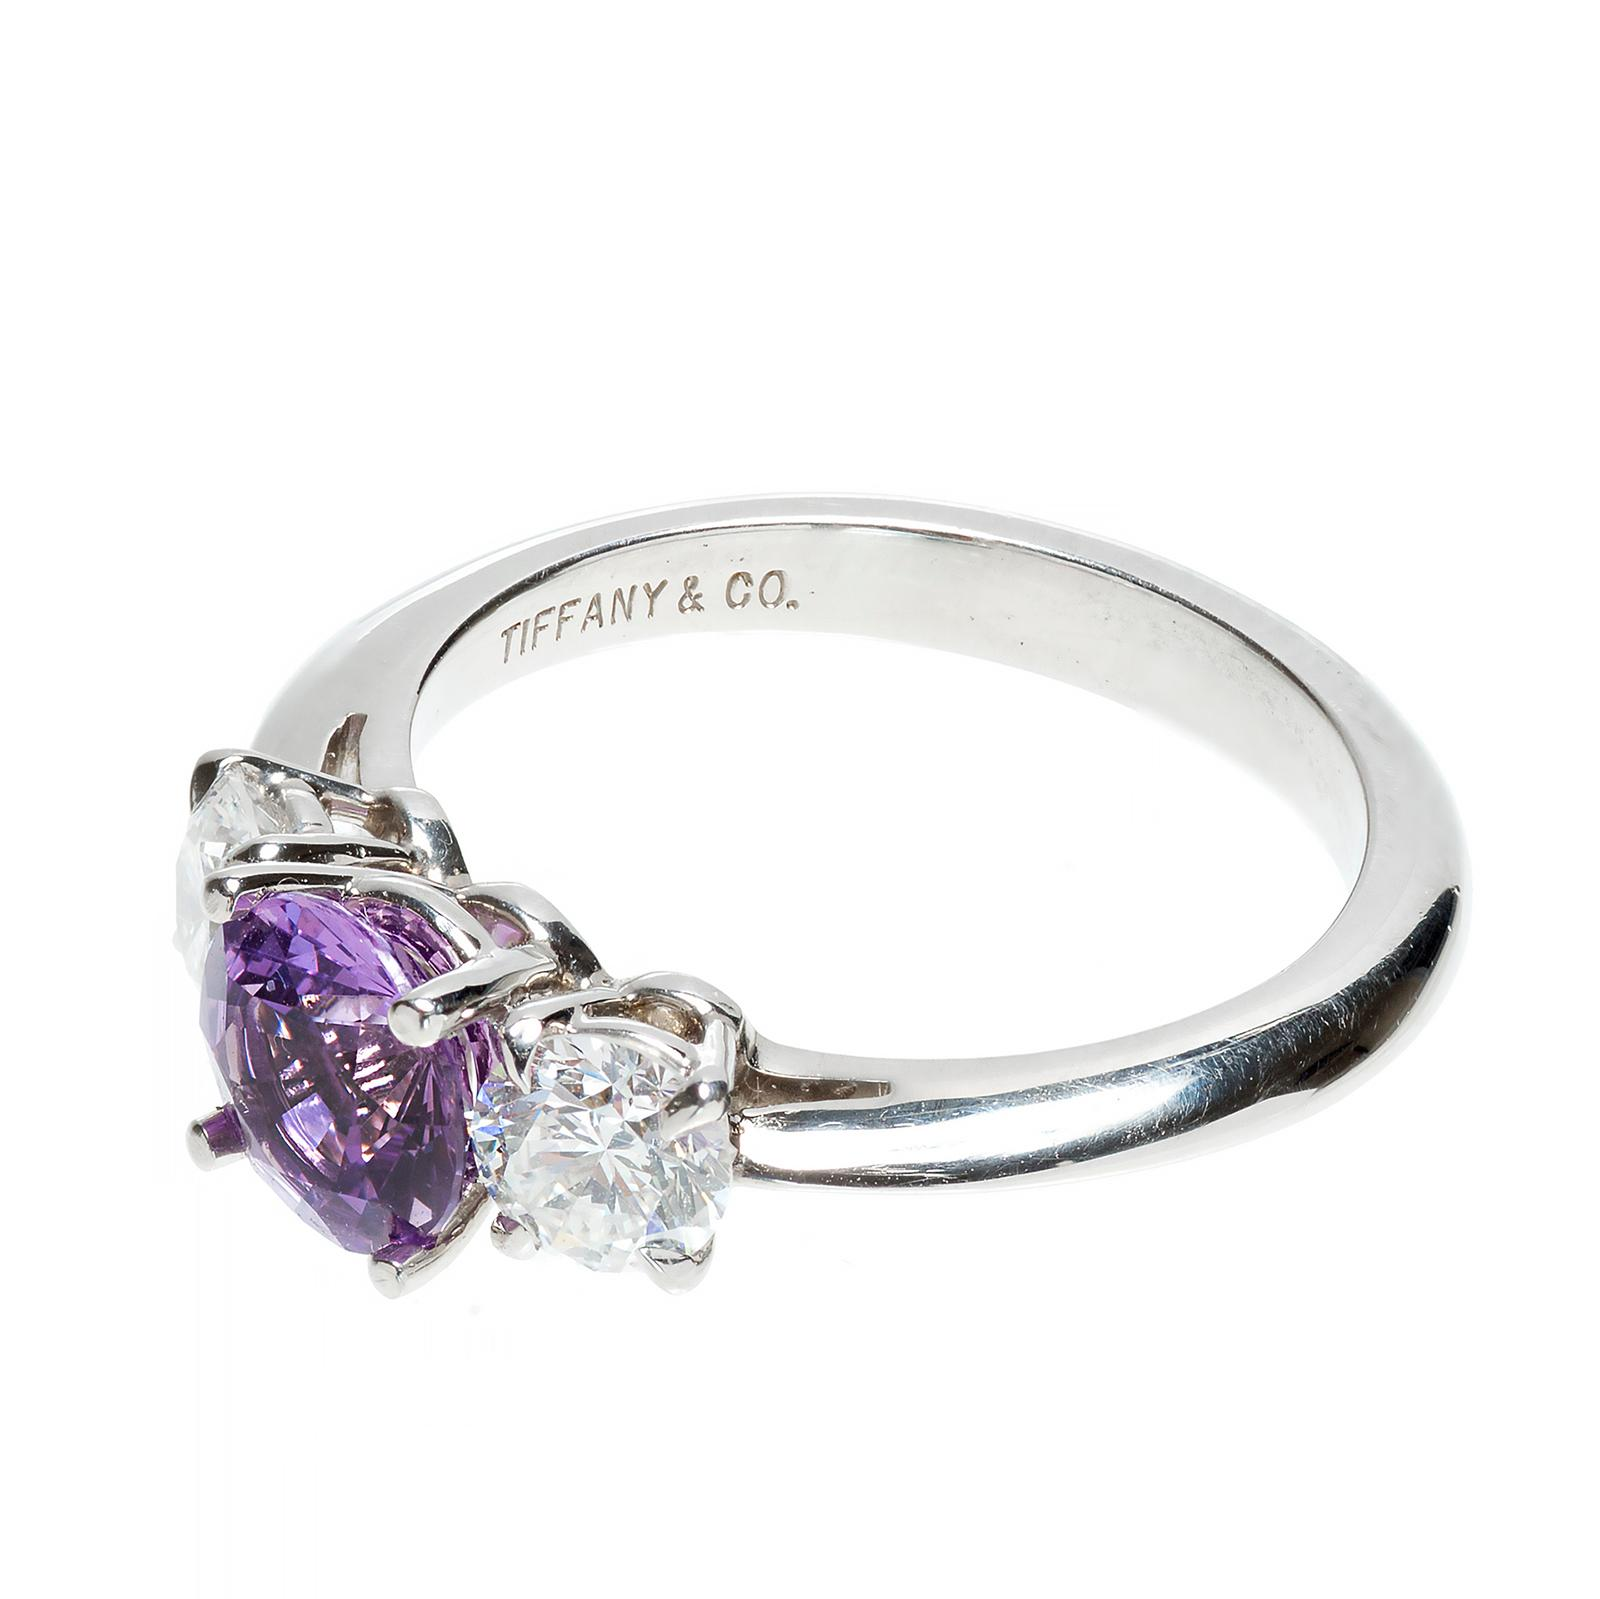 Tiffany & Co Purple Sapphire Diamond Platinum Engagement Ring from peters